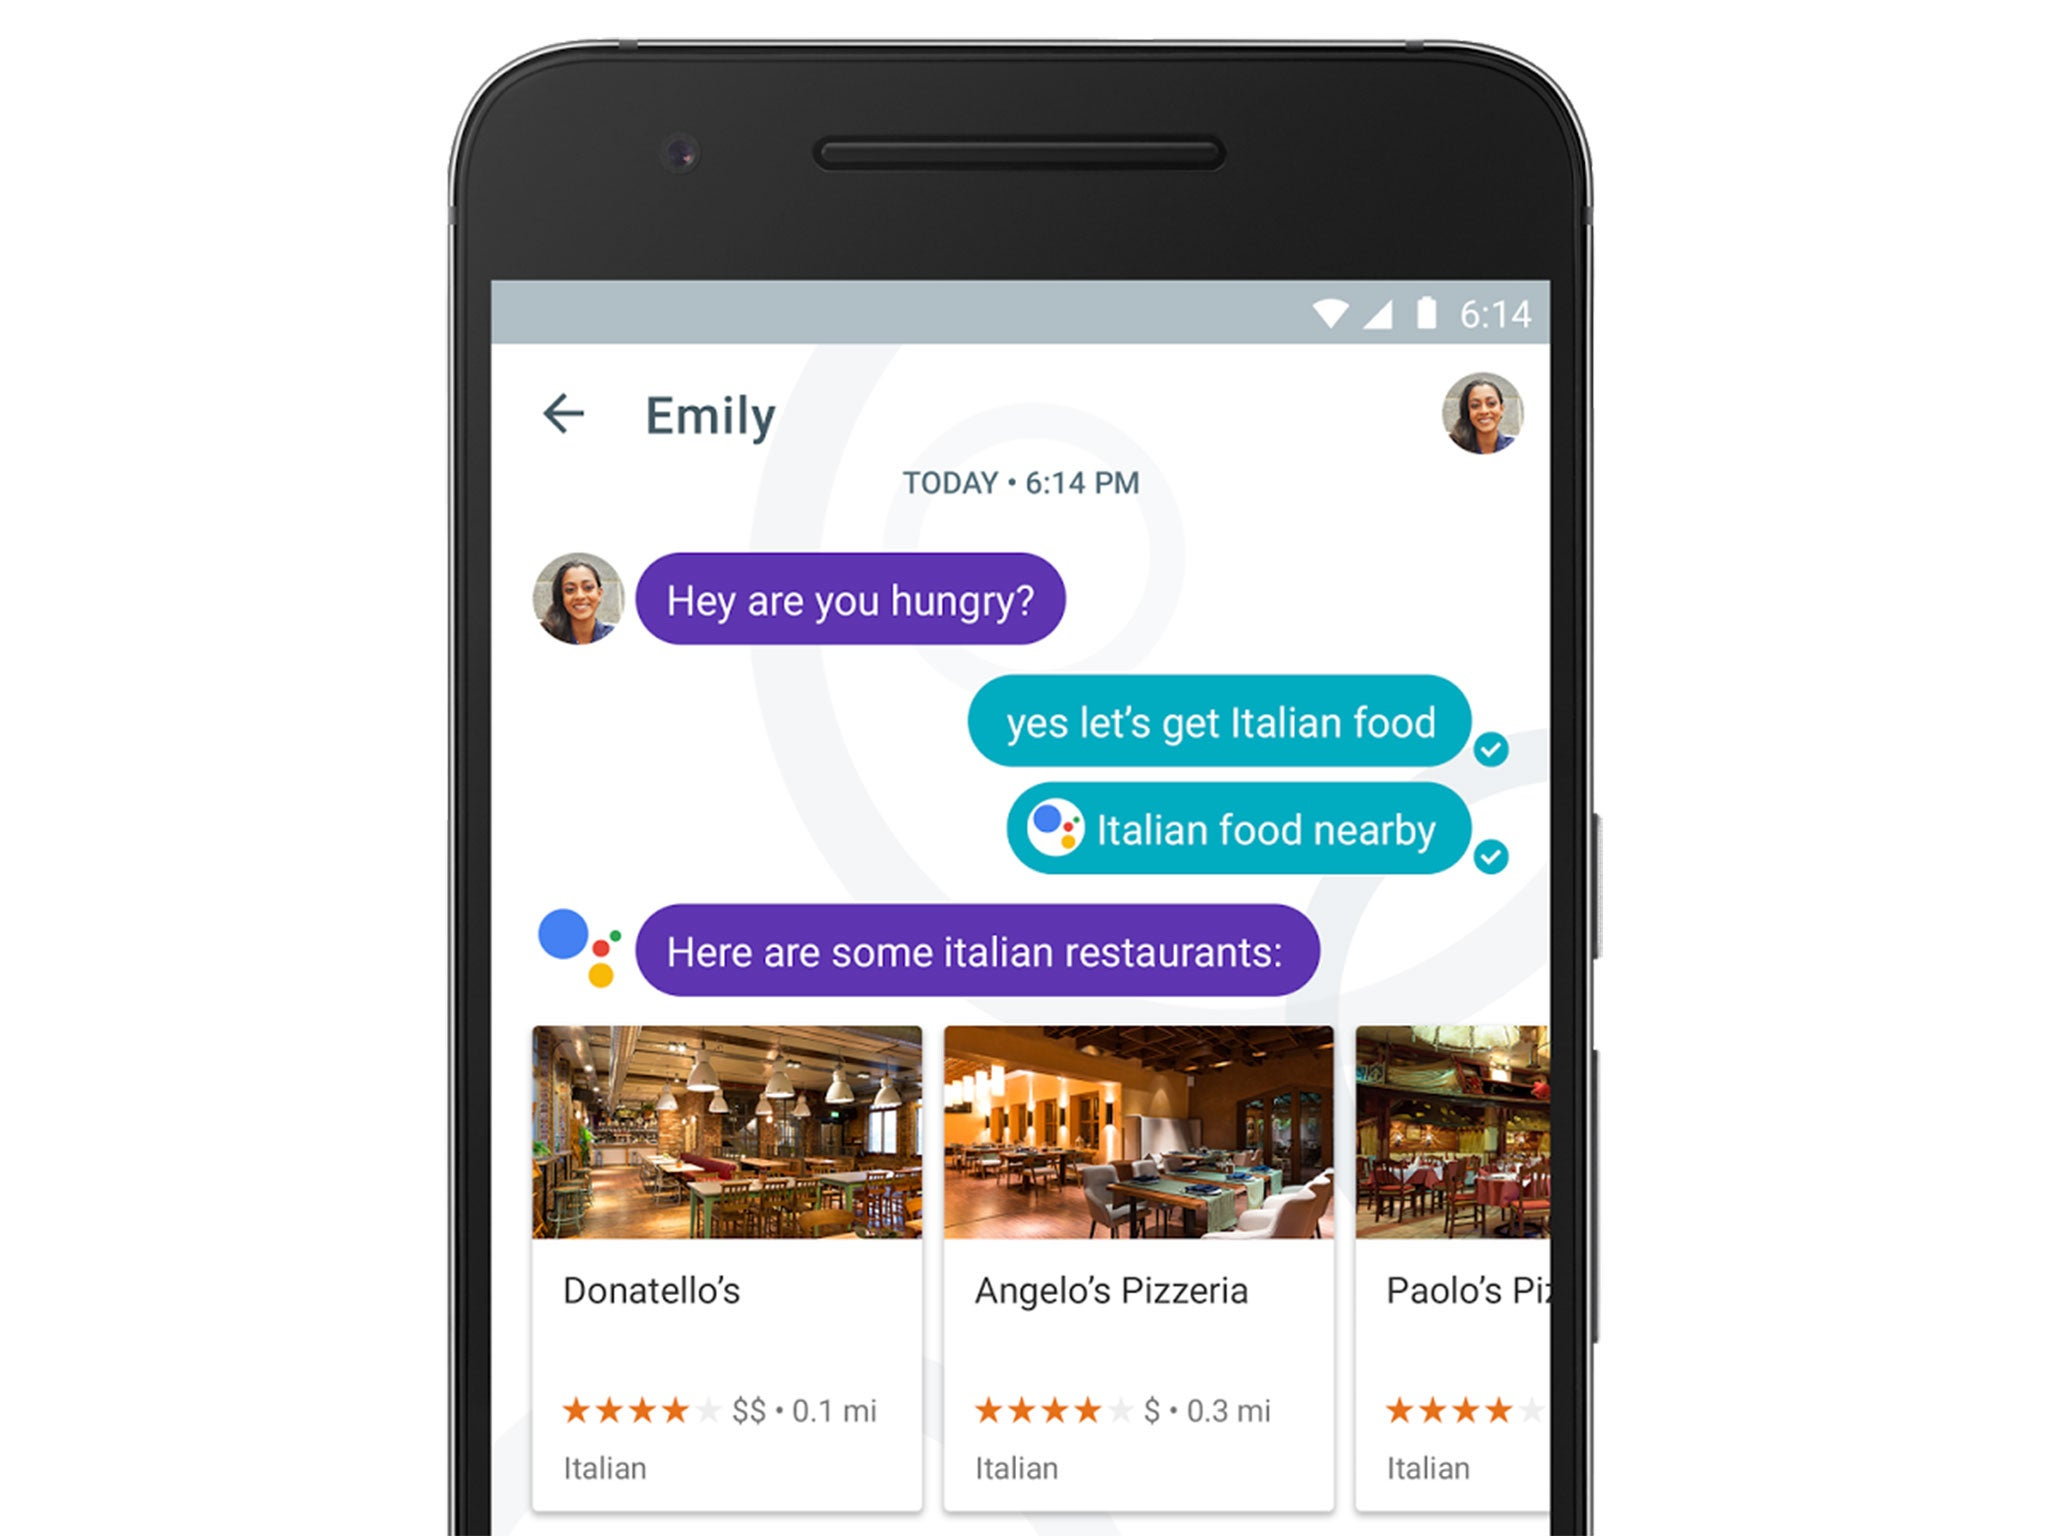 Google I/O 2016: Allo chat app, Android N and Daydream VR platform unveiled at conference